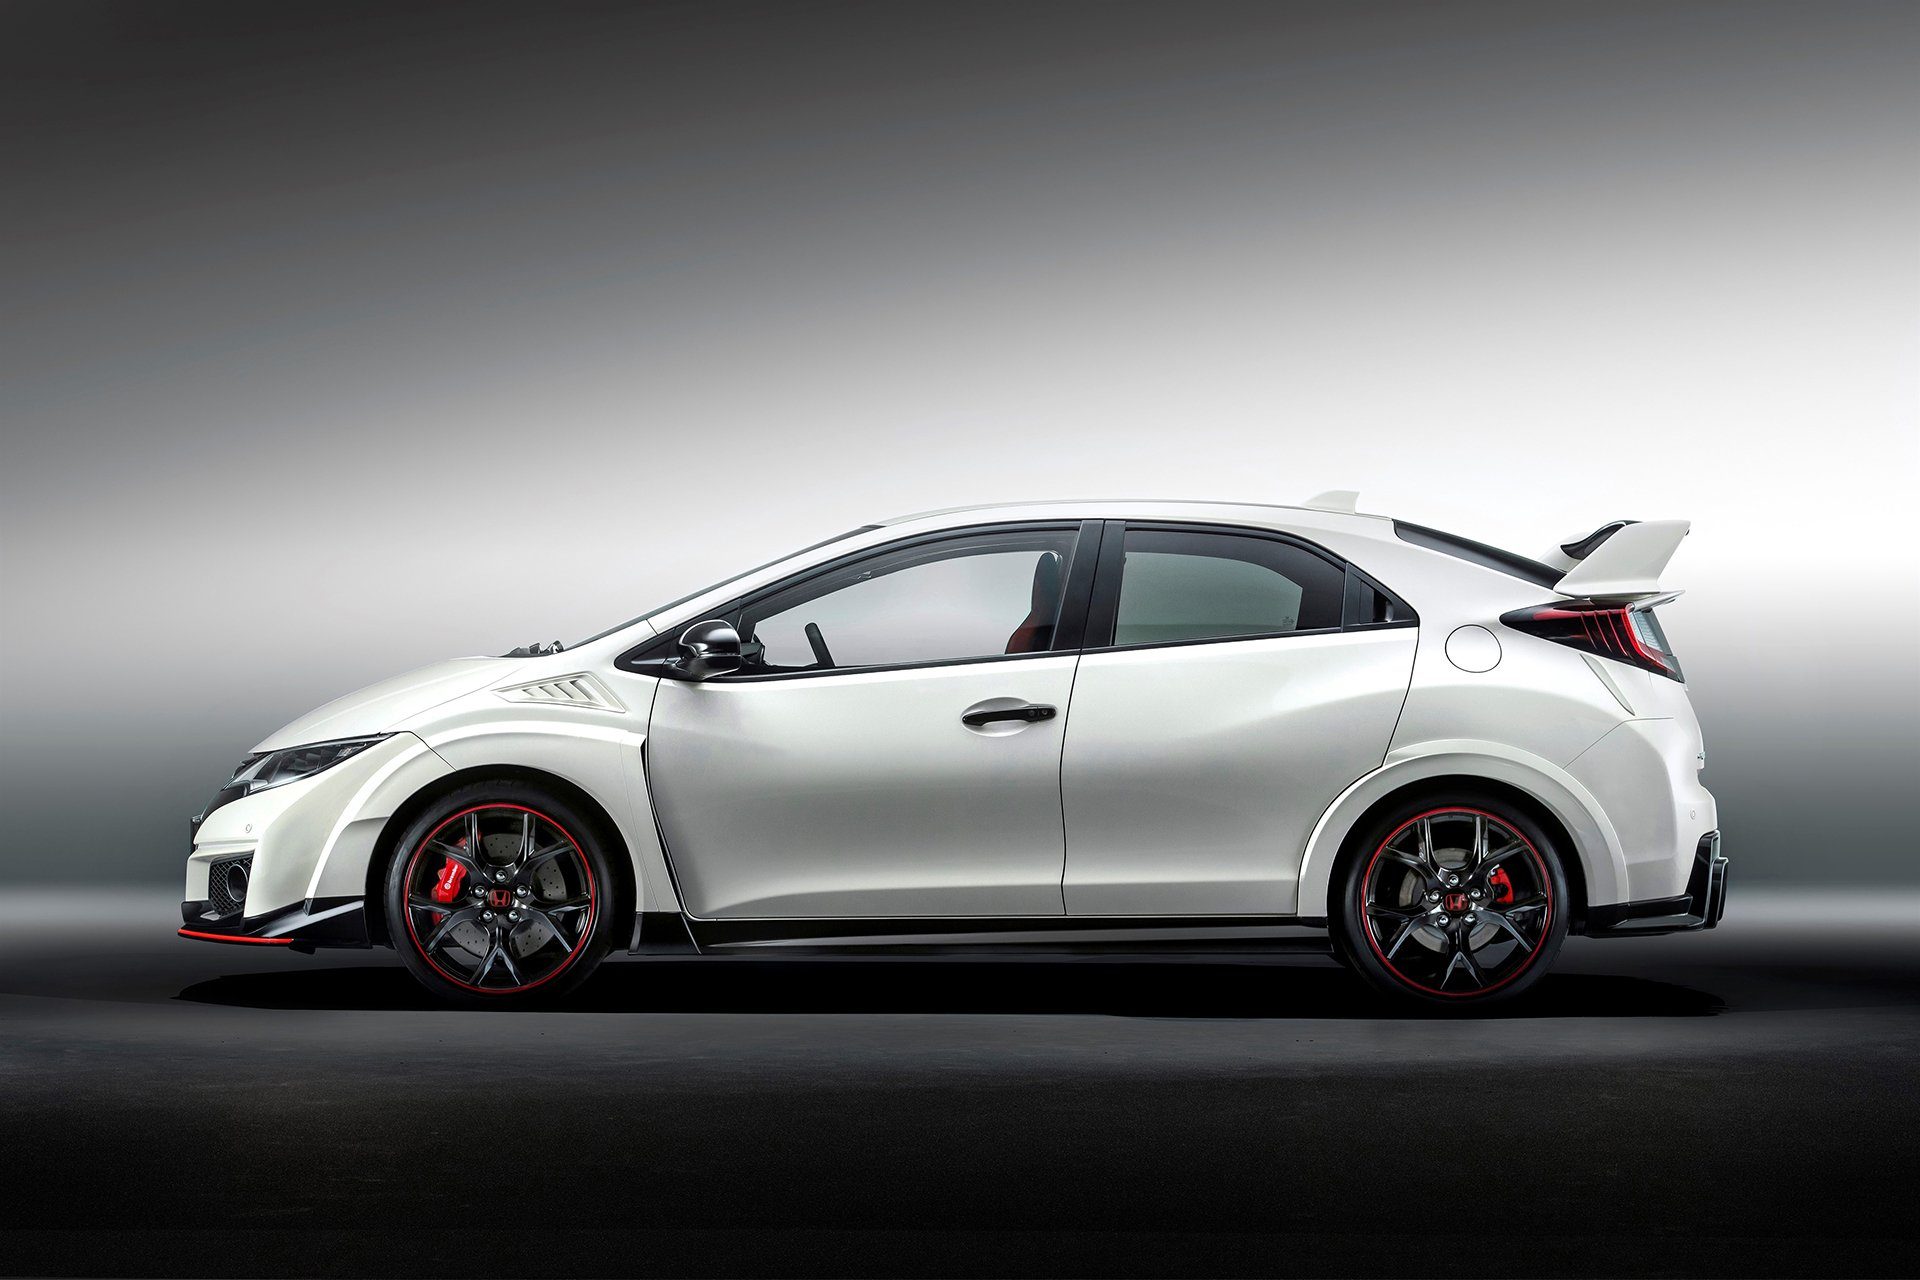 2015 Civic Type R